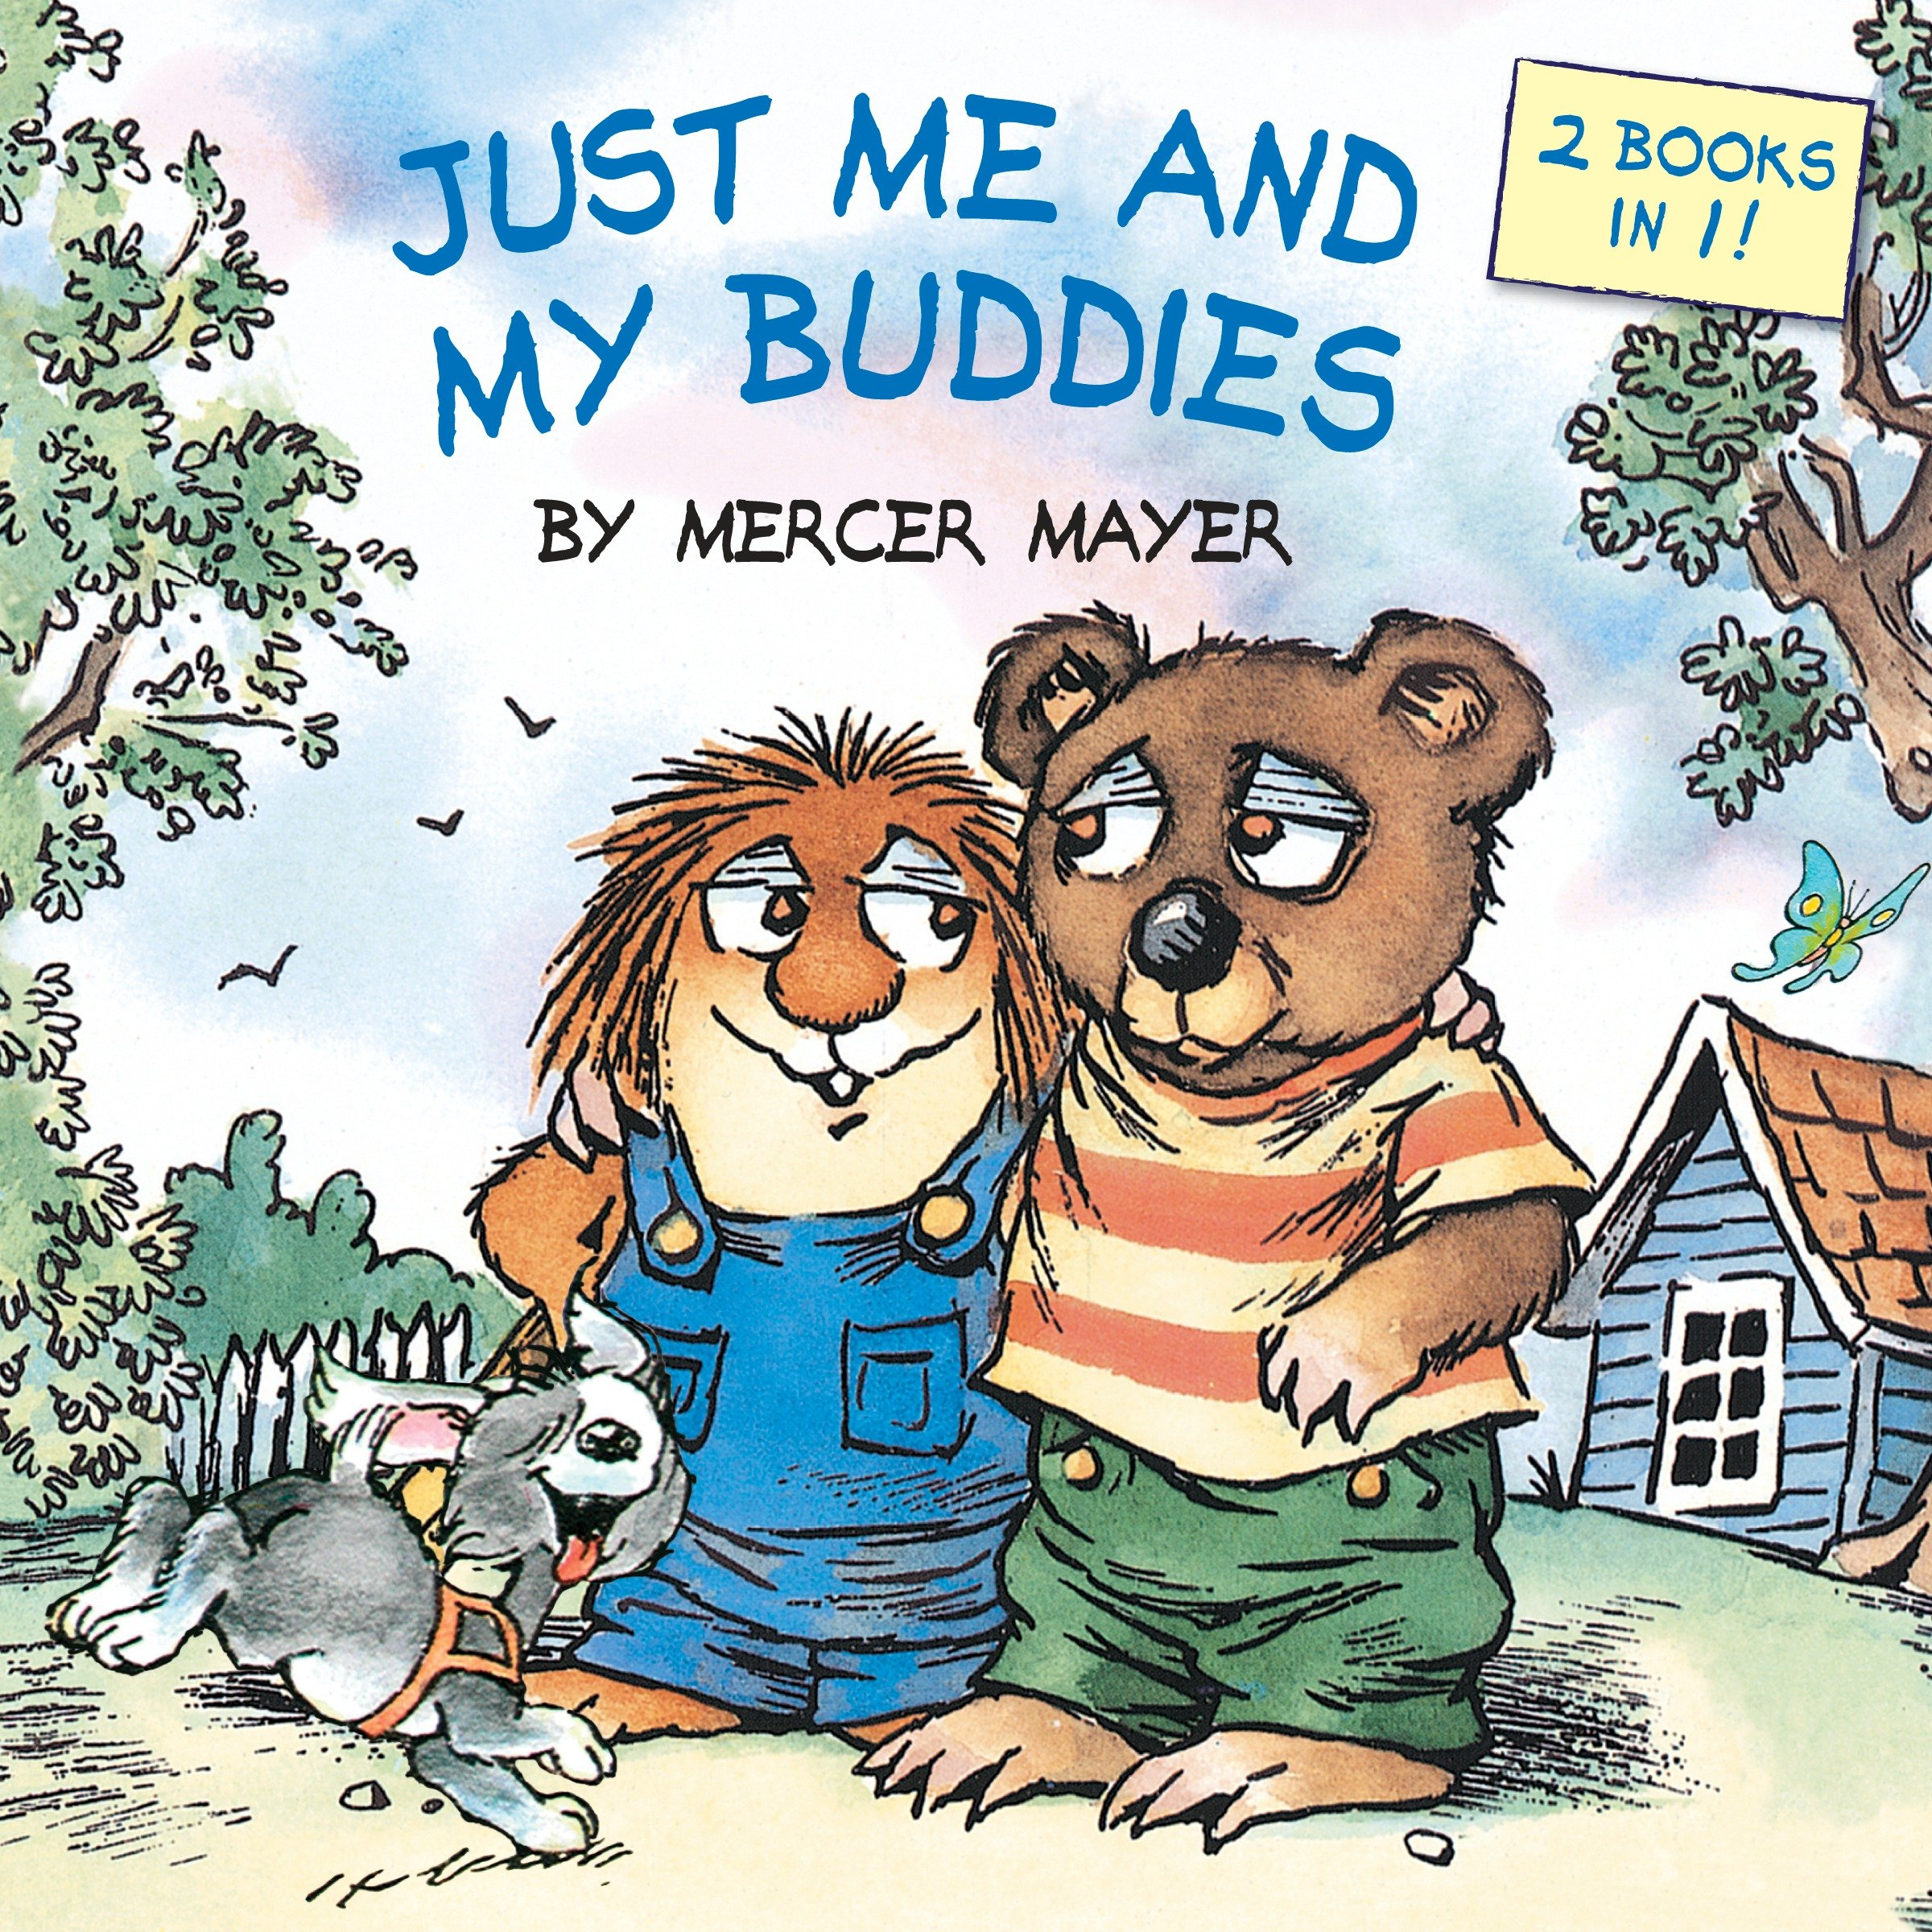 Book Just Me And My Buddies (little Critter) by Mercer Mayer